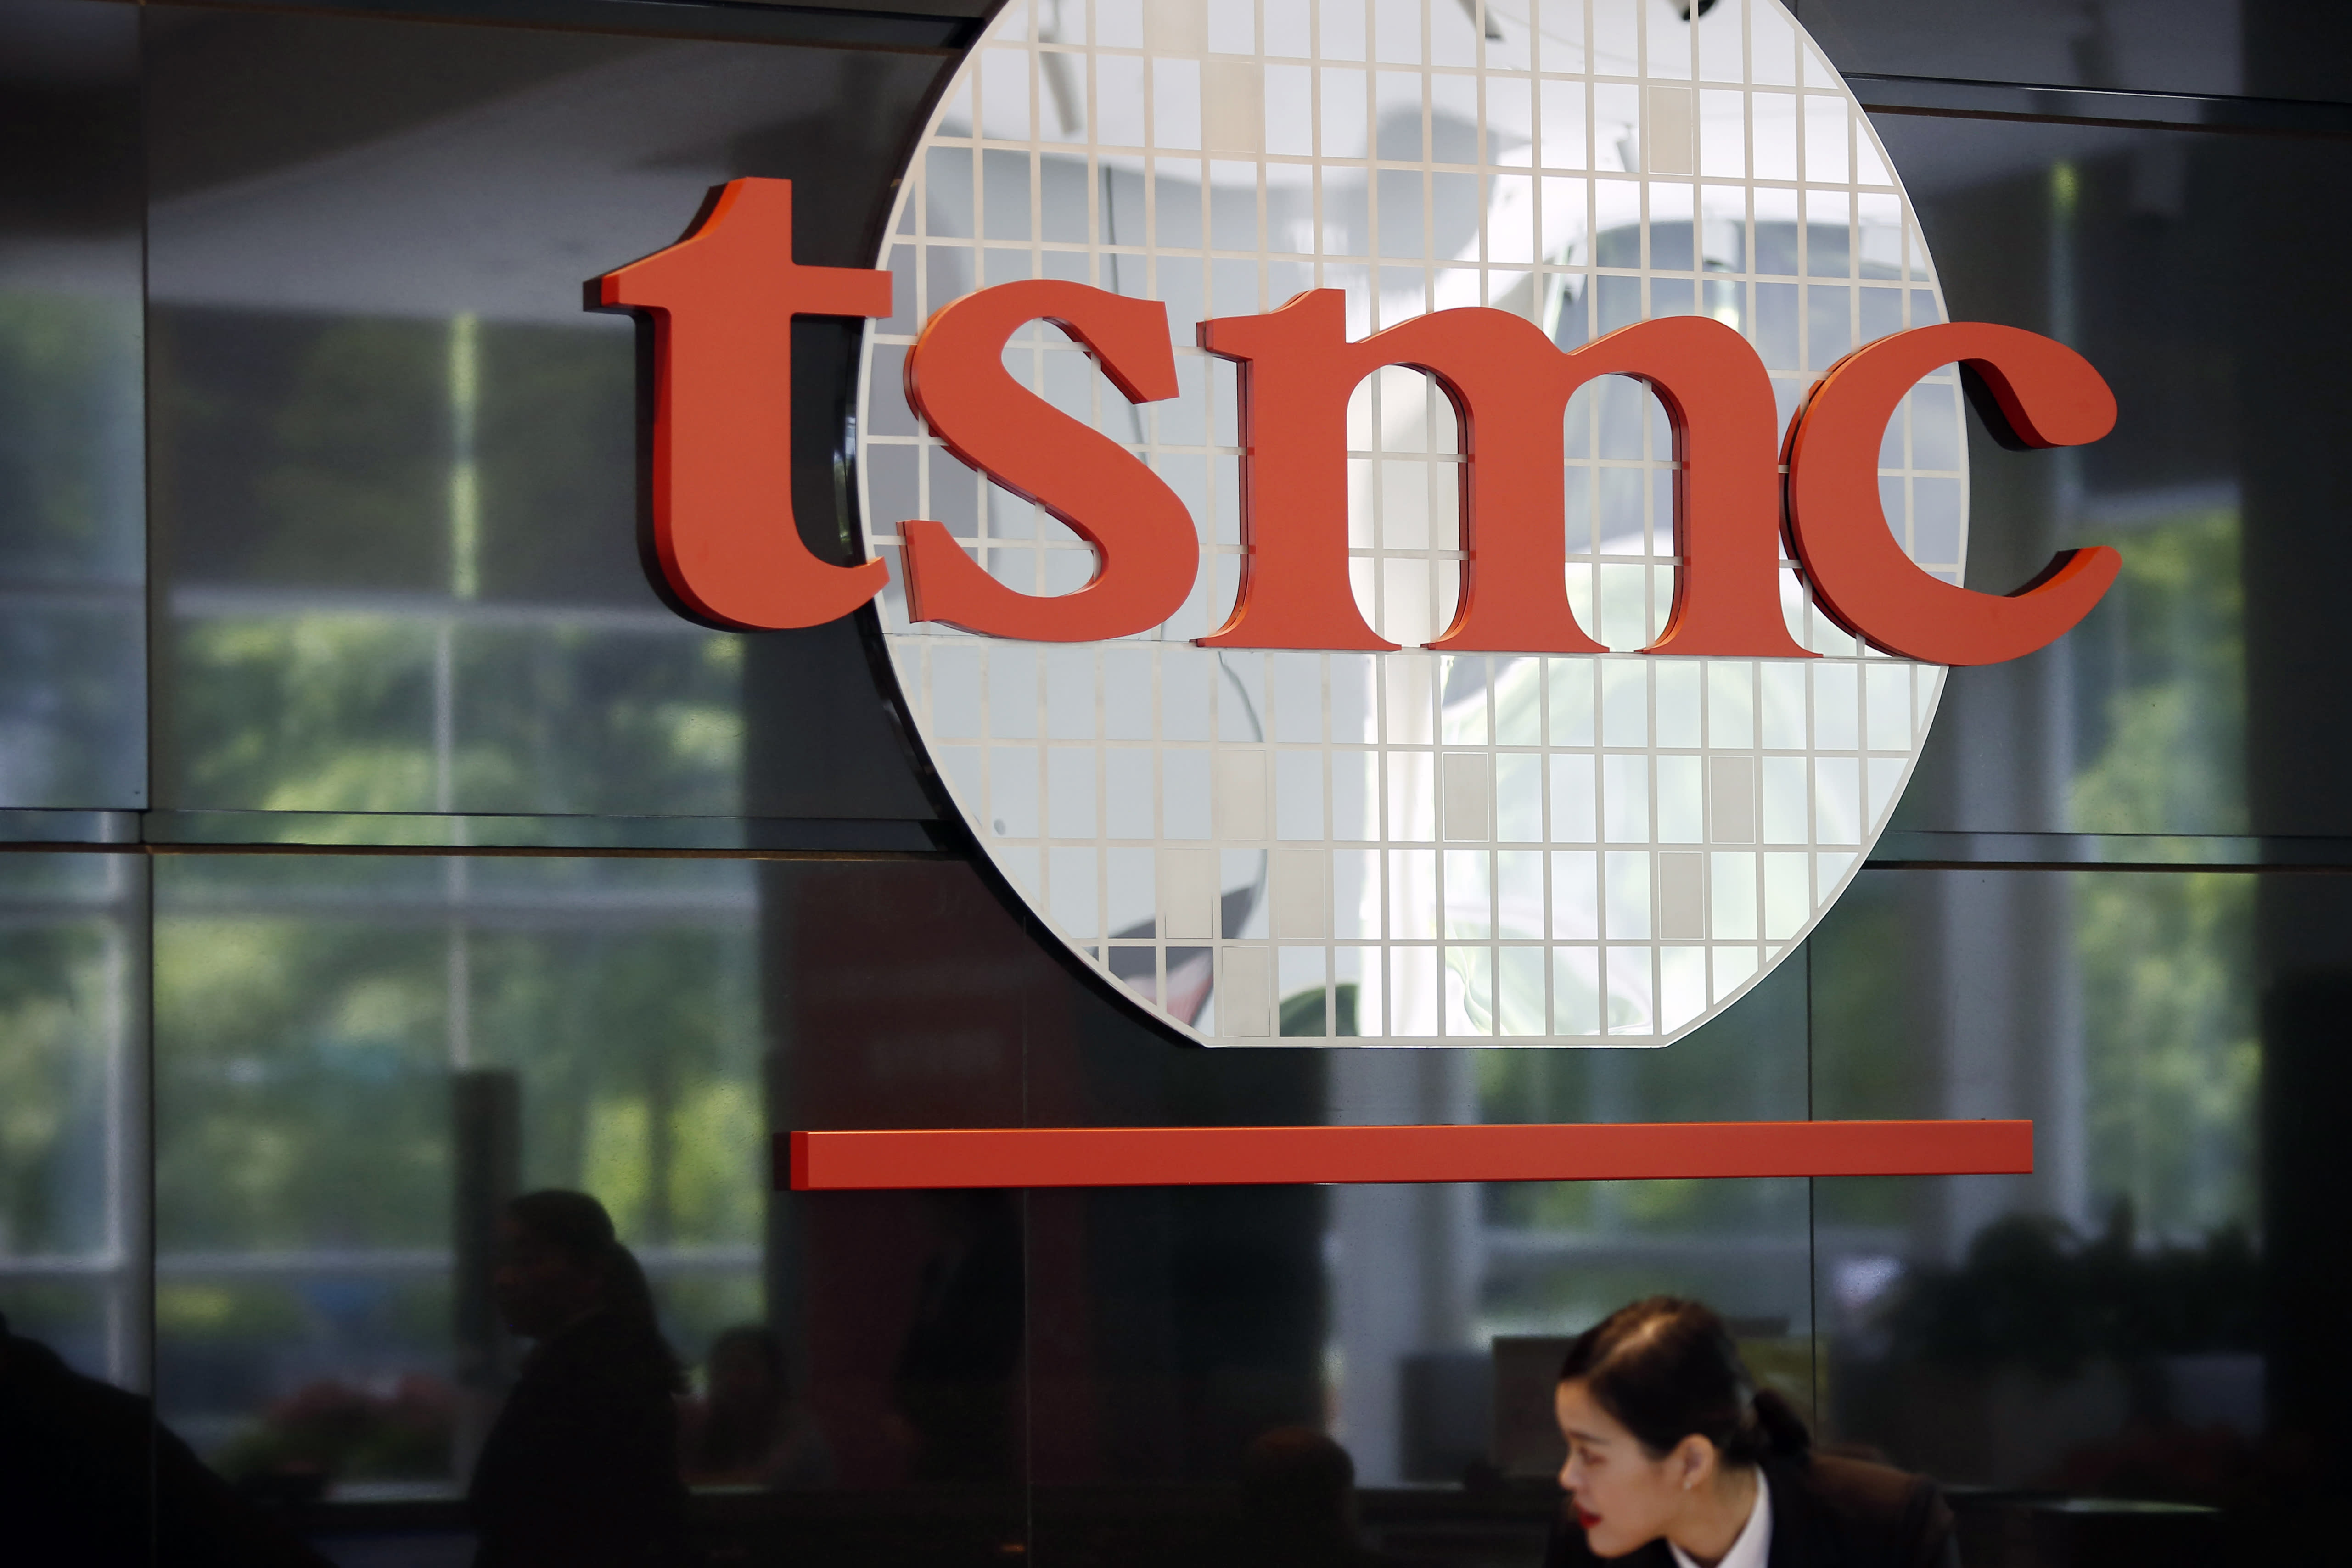 TSMC's massive capital spending plans for 2021 could pressure its earnings, analyst says